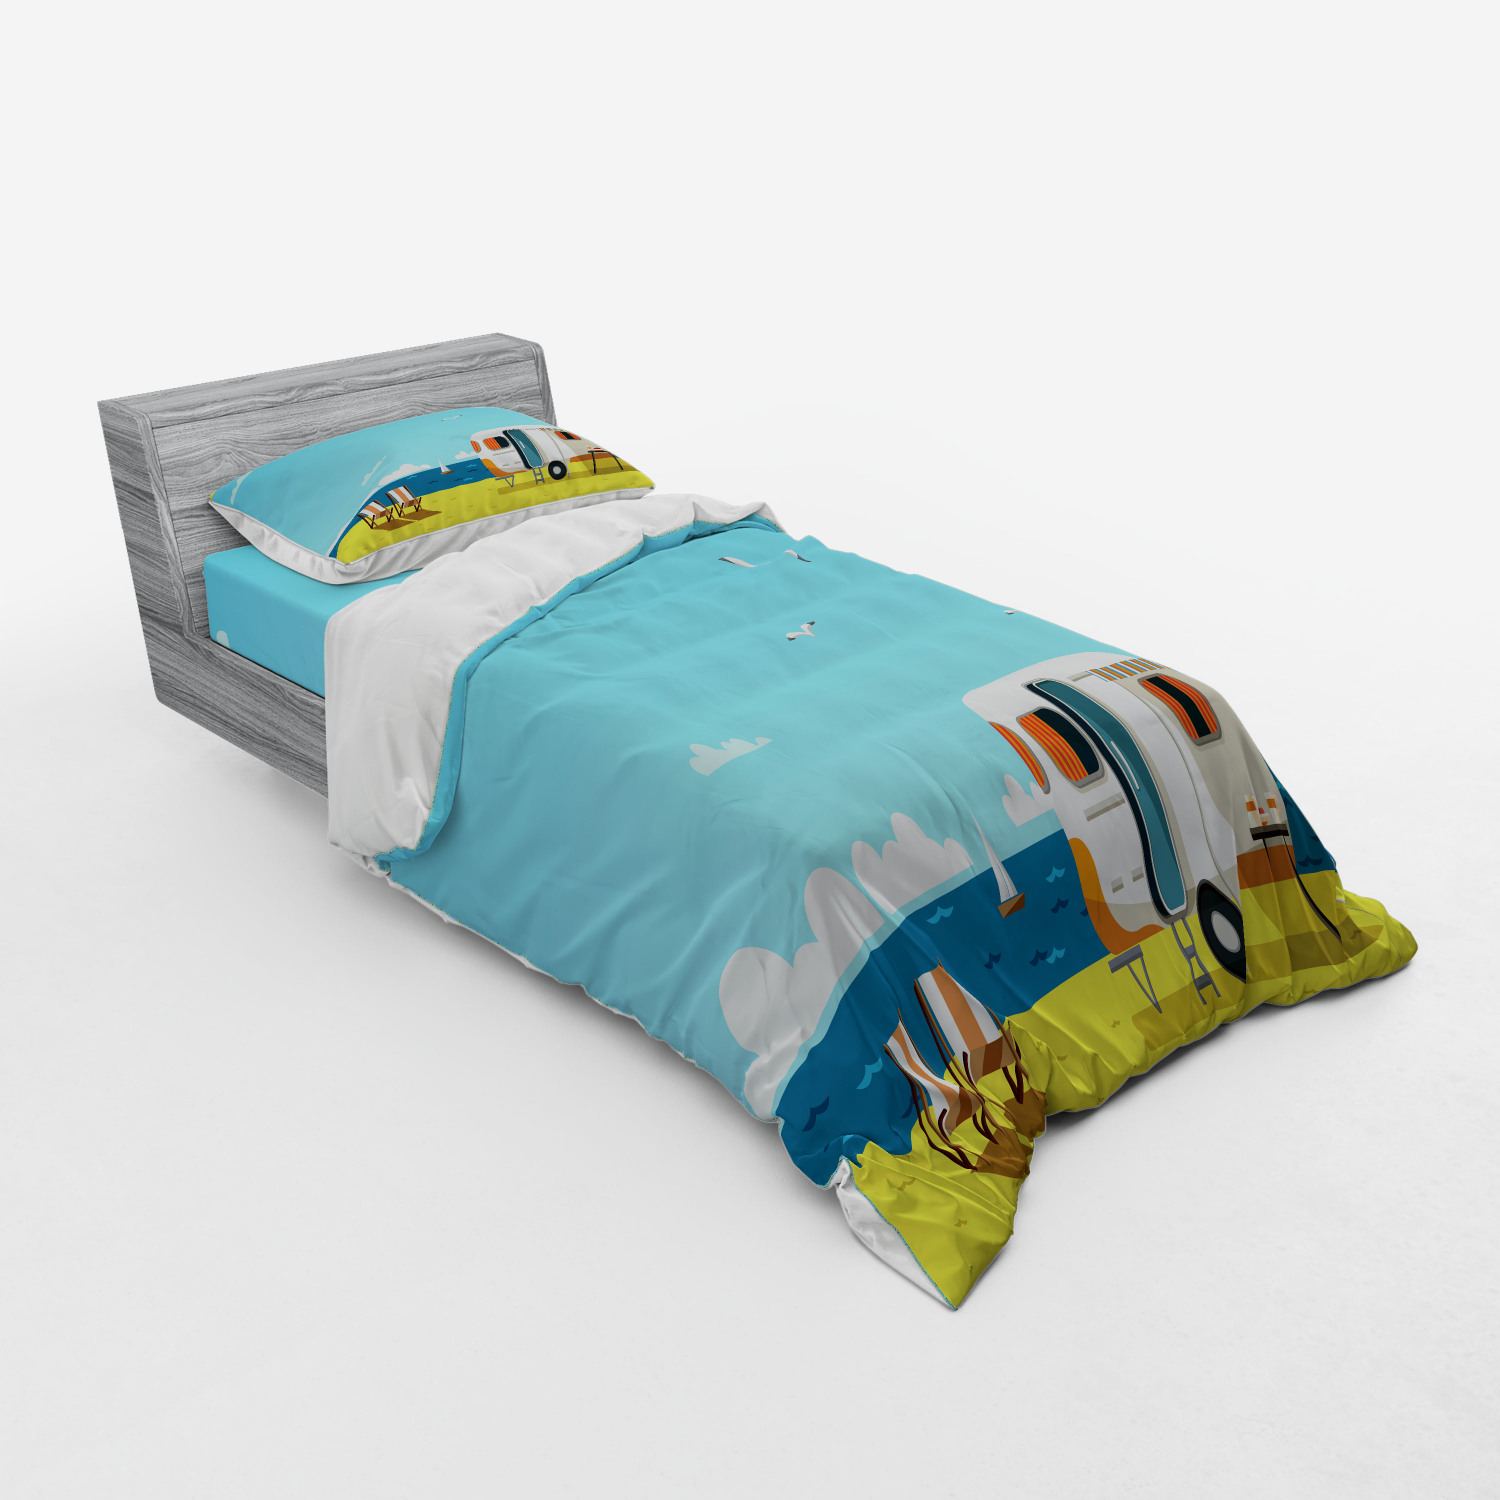 thumbnail 45 - Ambesonne Summer Bedding Set Duvet Cover Sham Fitted Sheet in 3 Sizes